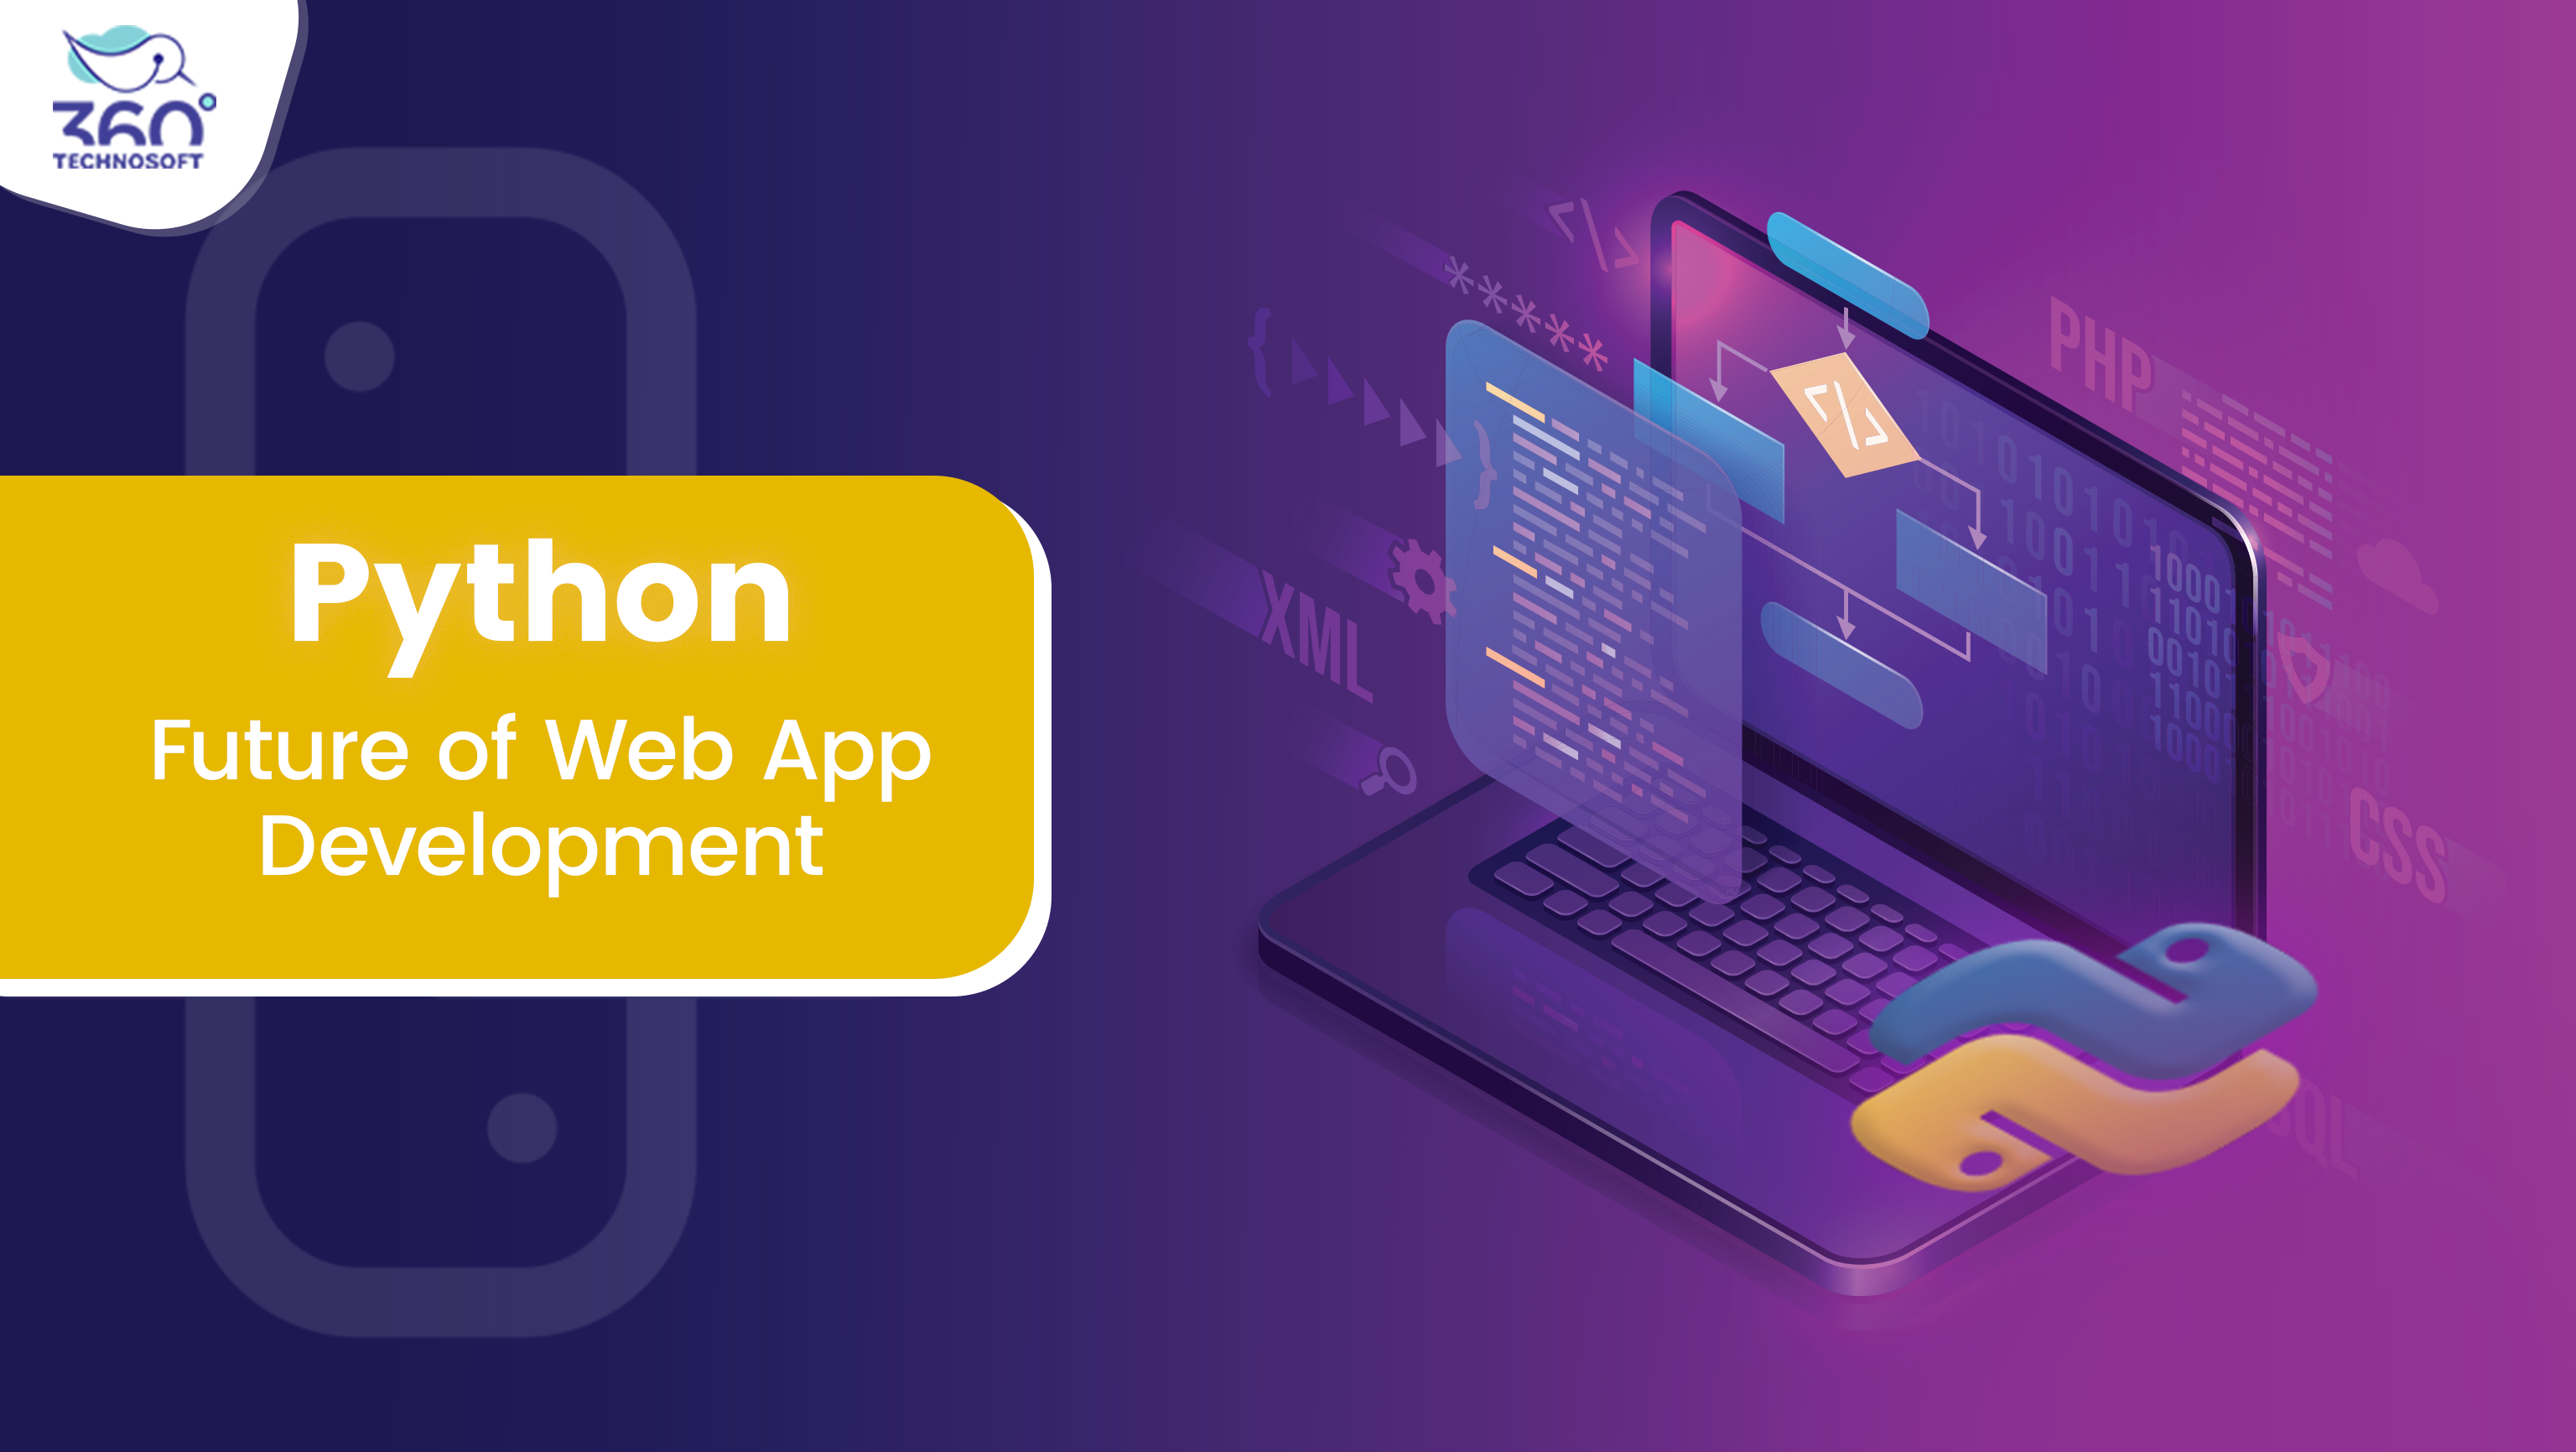 Why Python is the future of web application development?